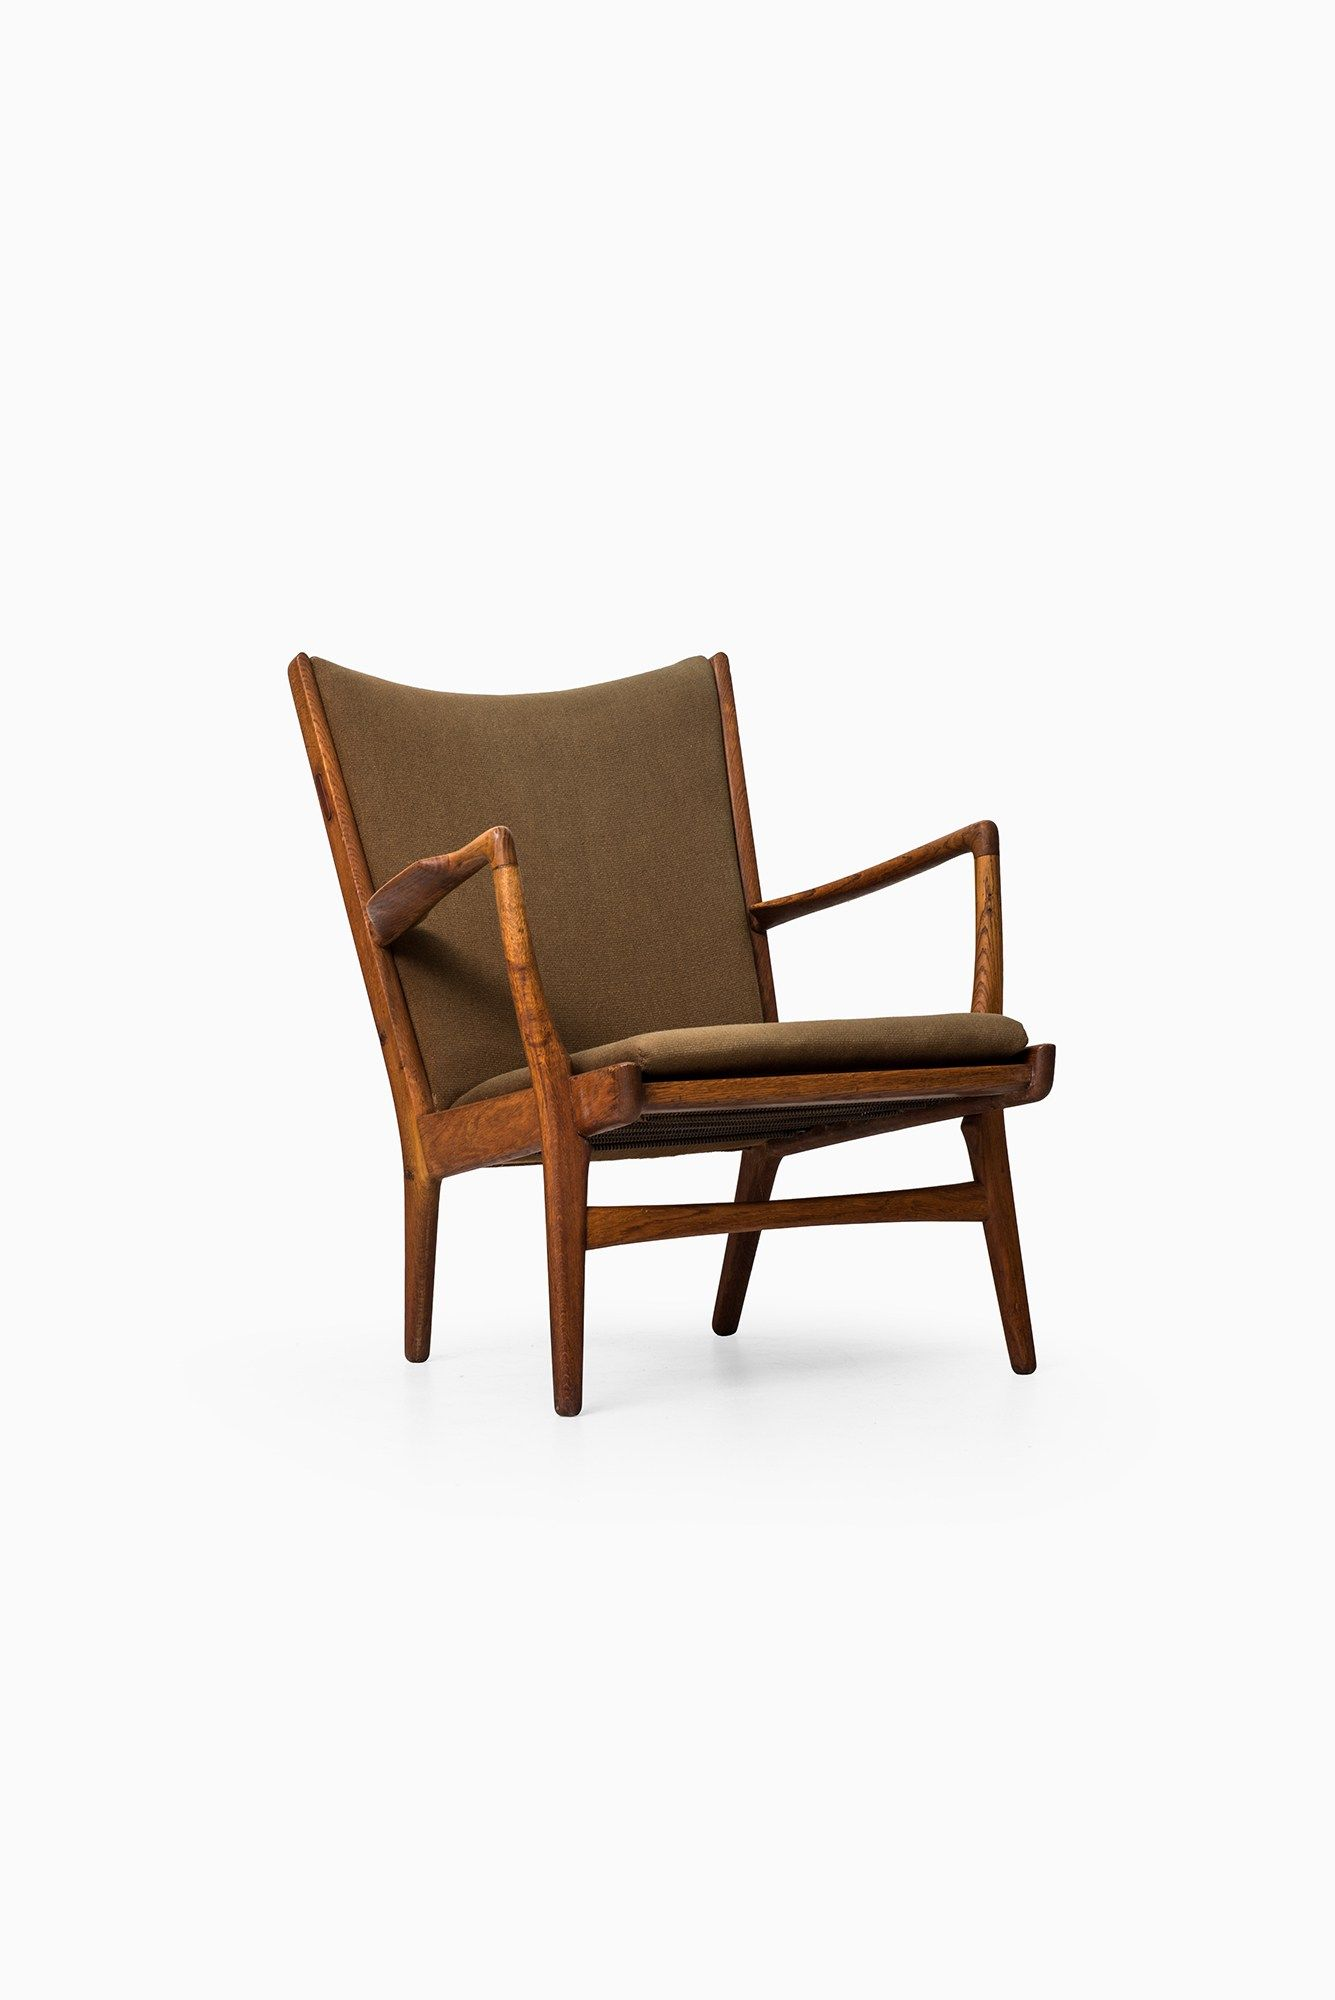 hans wegner ap 16 easy chair hans wegner studio and danish